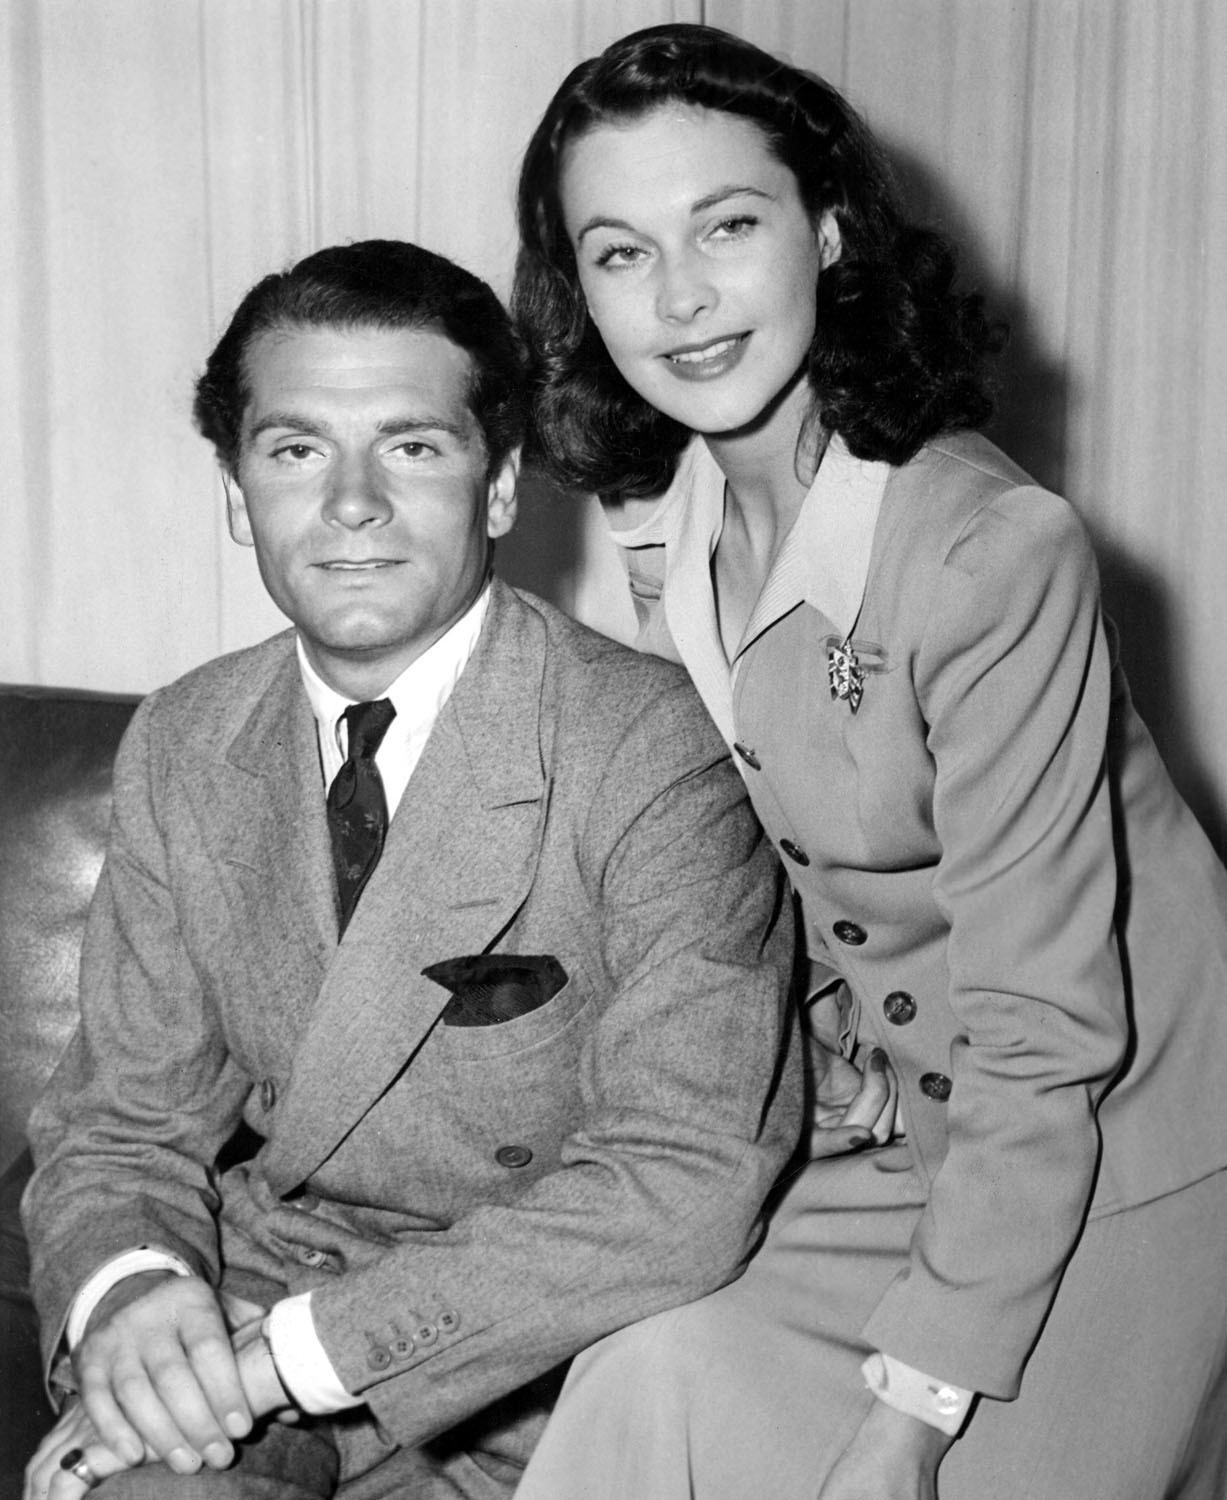 Vivien Leigh image Vivien Leigh and Laurence Olivier HD wallpapers